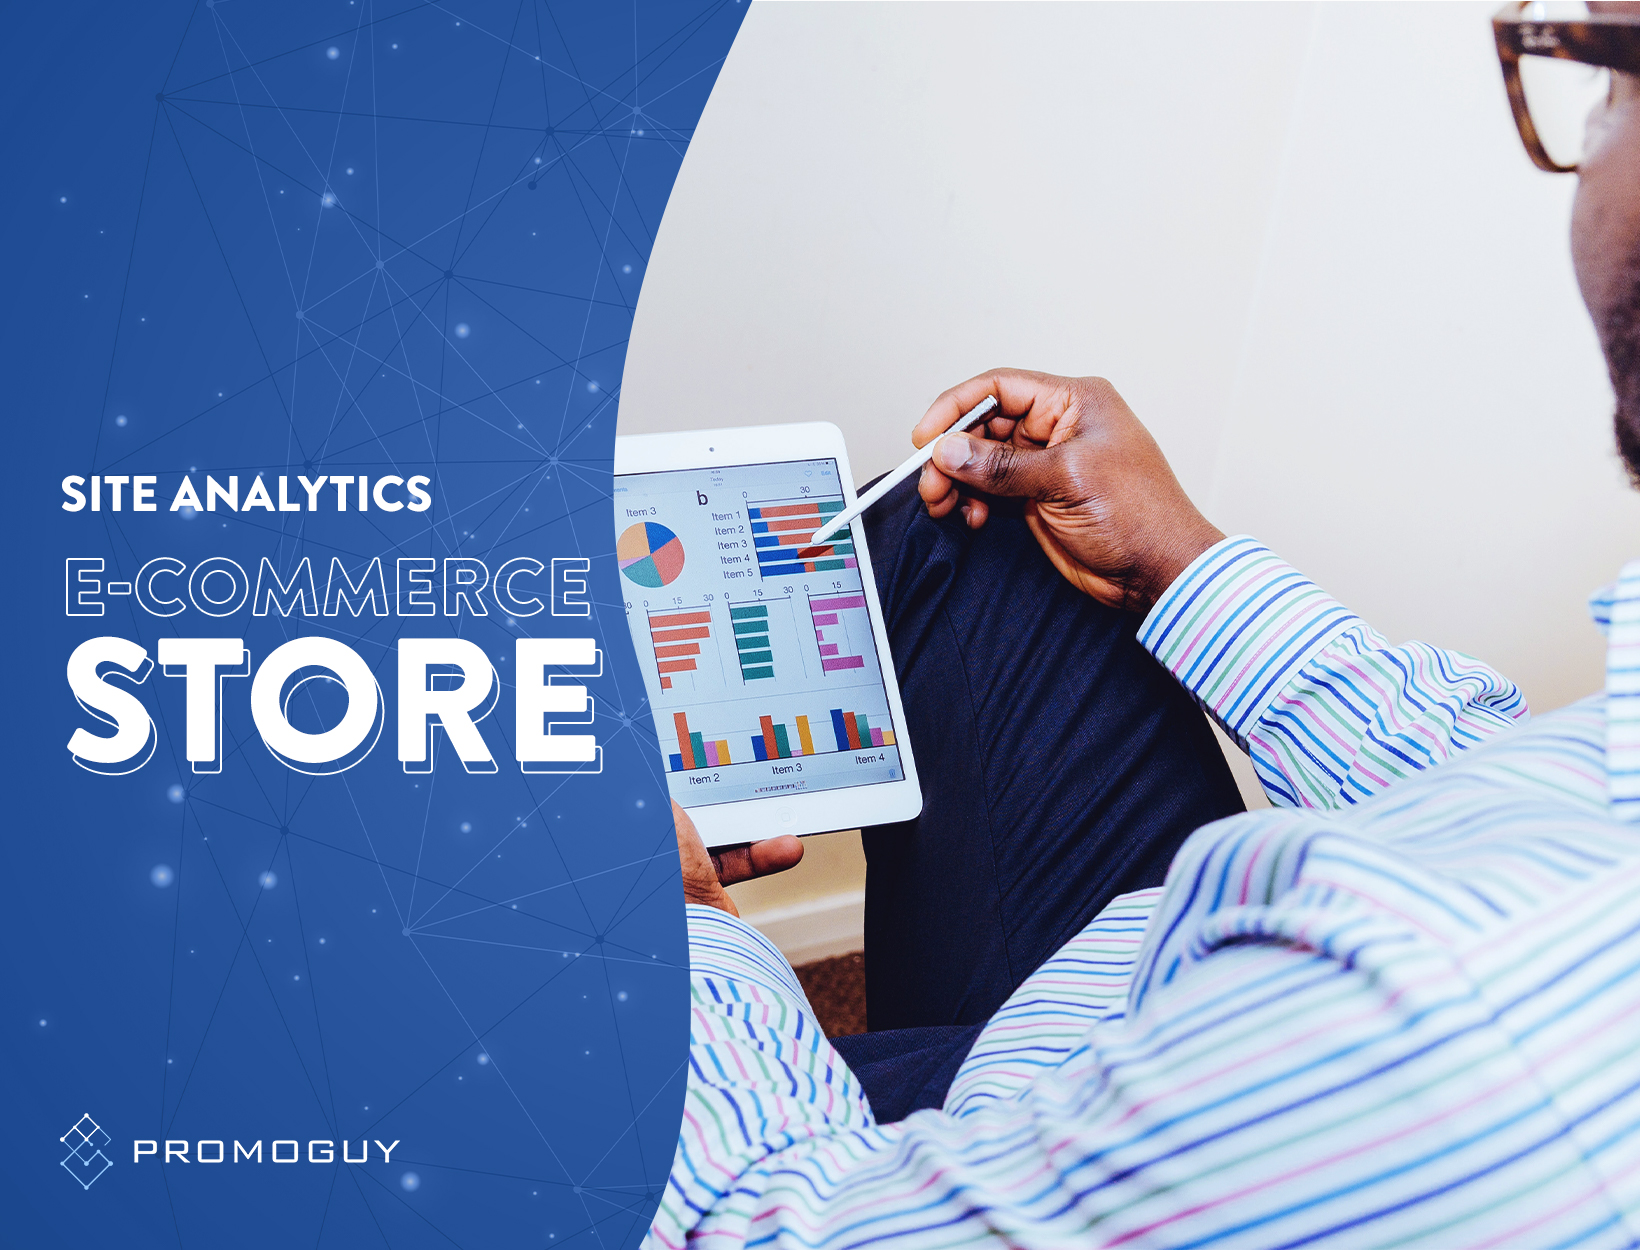 Site Analytics for e-Commerce Store - Digital Strategy